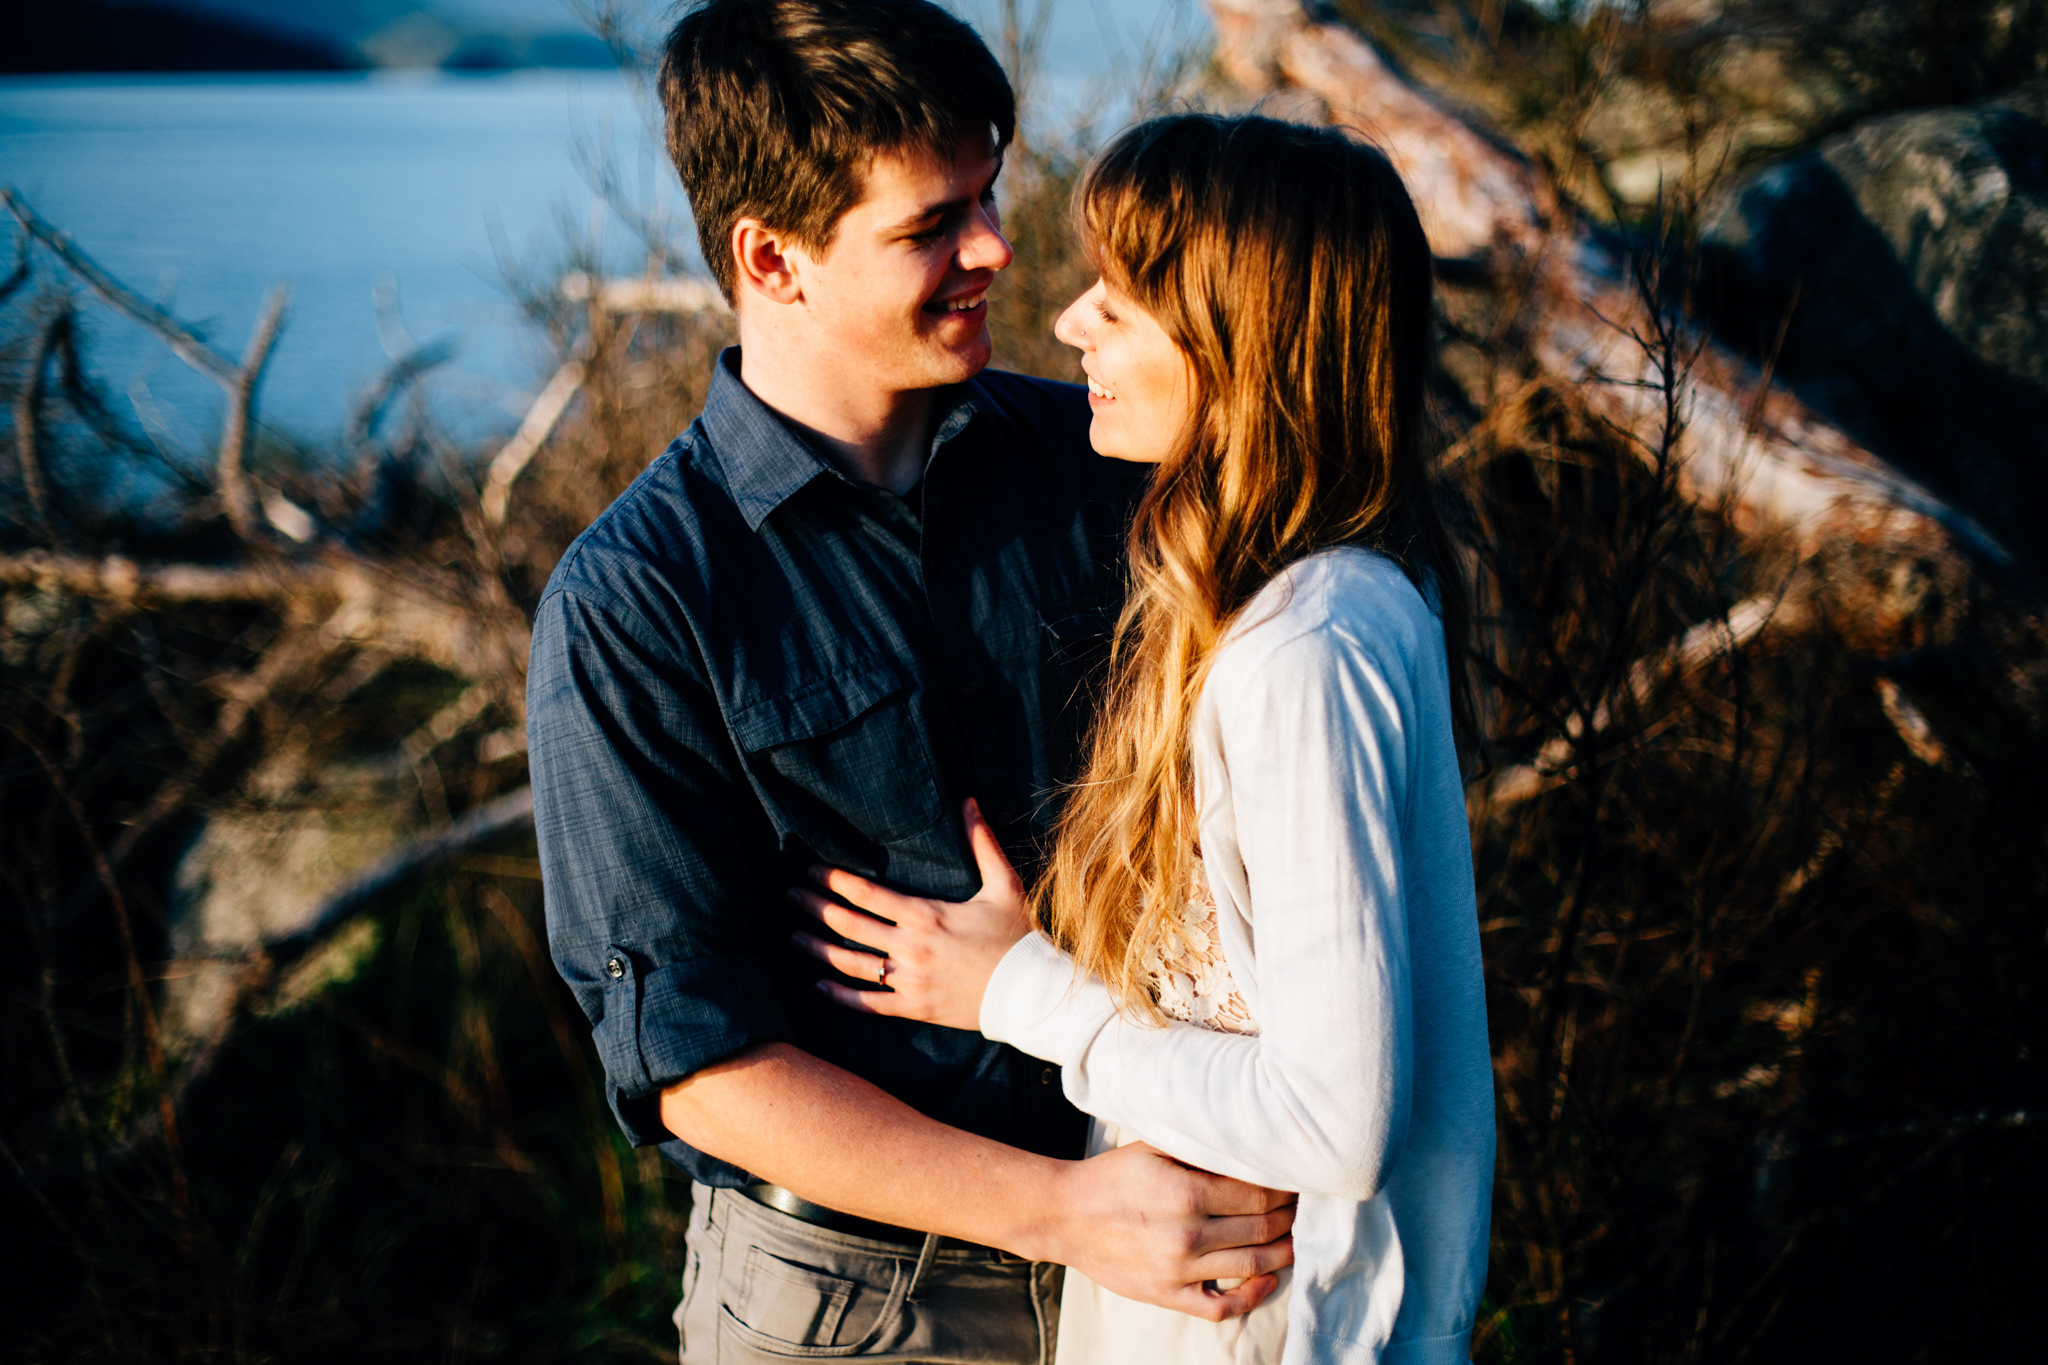 Vancouver Whytecliff Park Engagement Photographer - Emmy Lou Virginia Photography-33.jpg